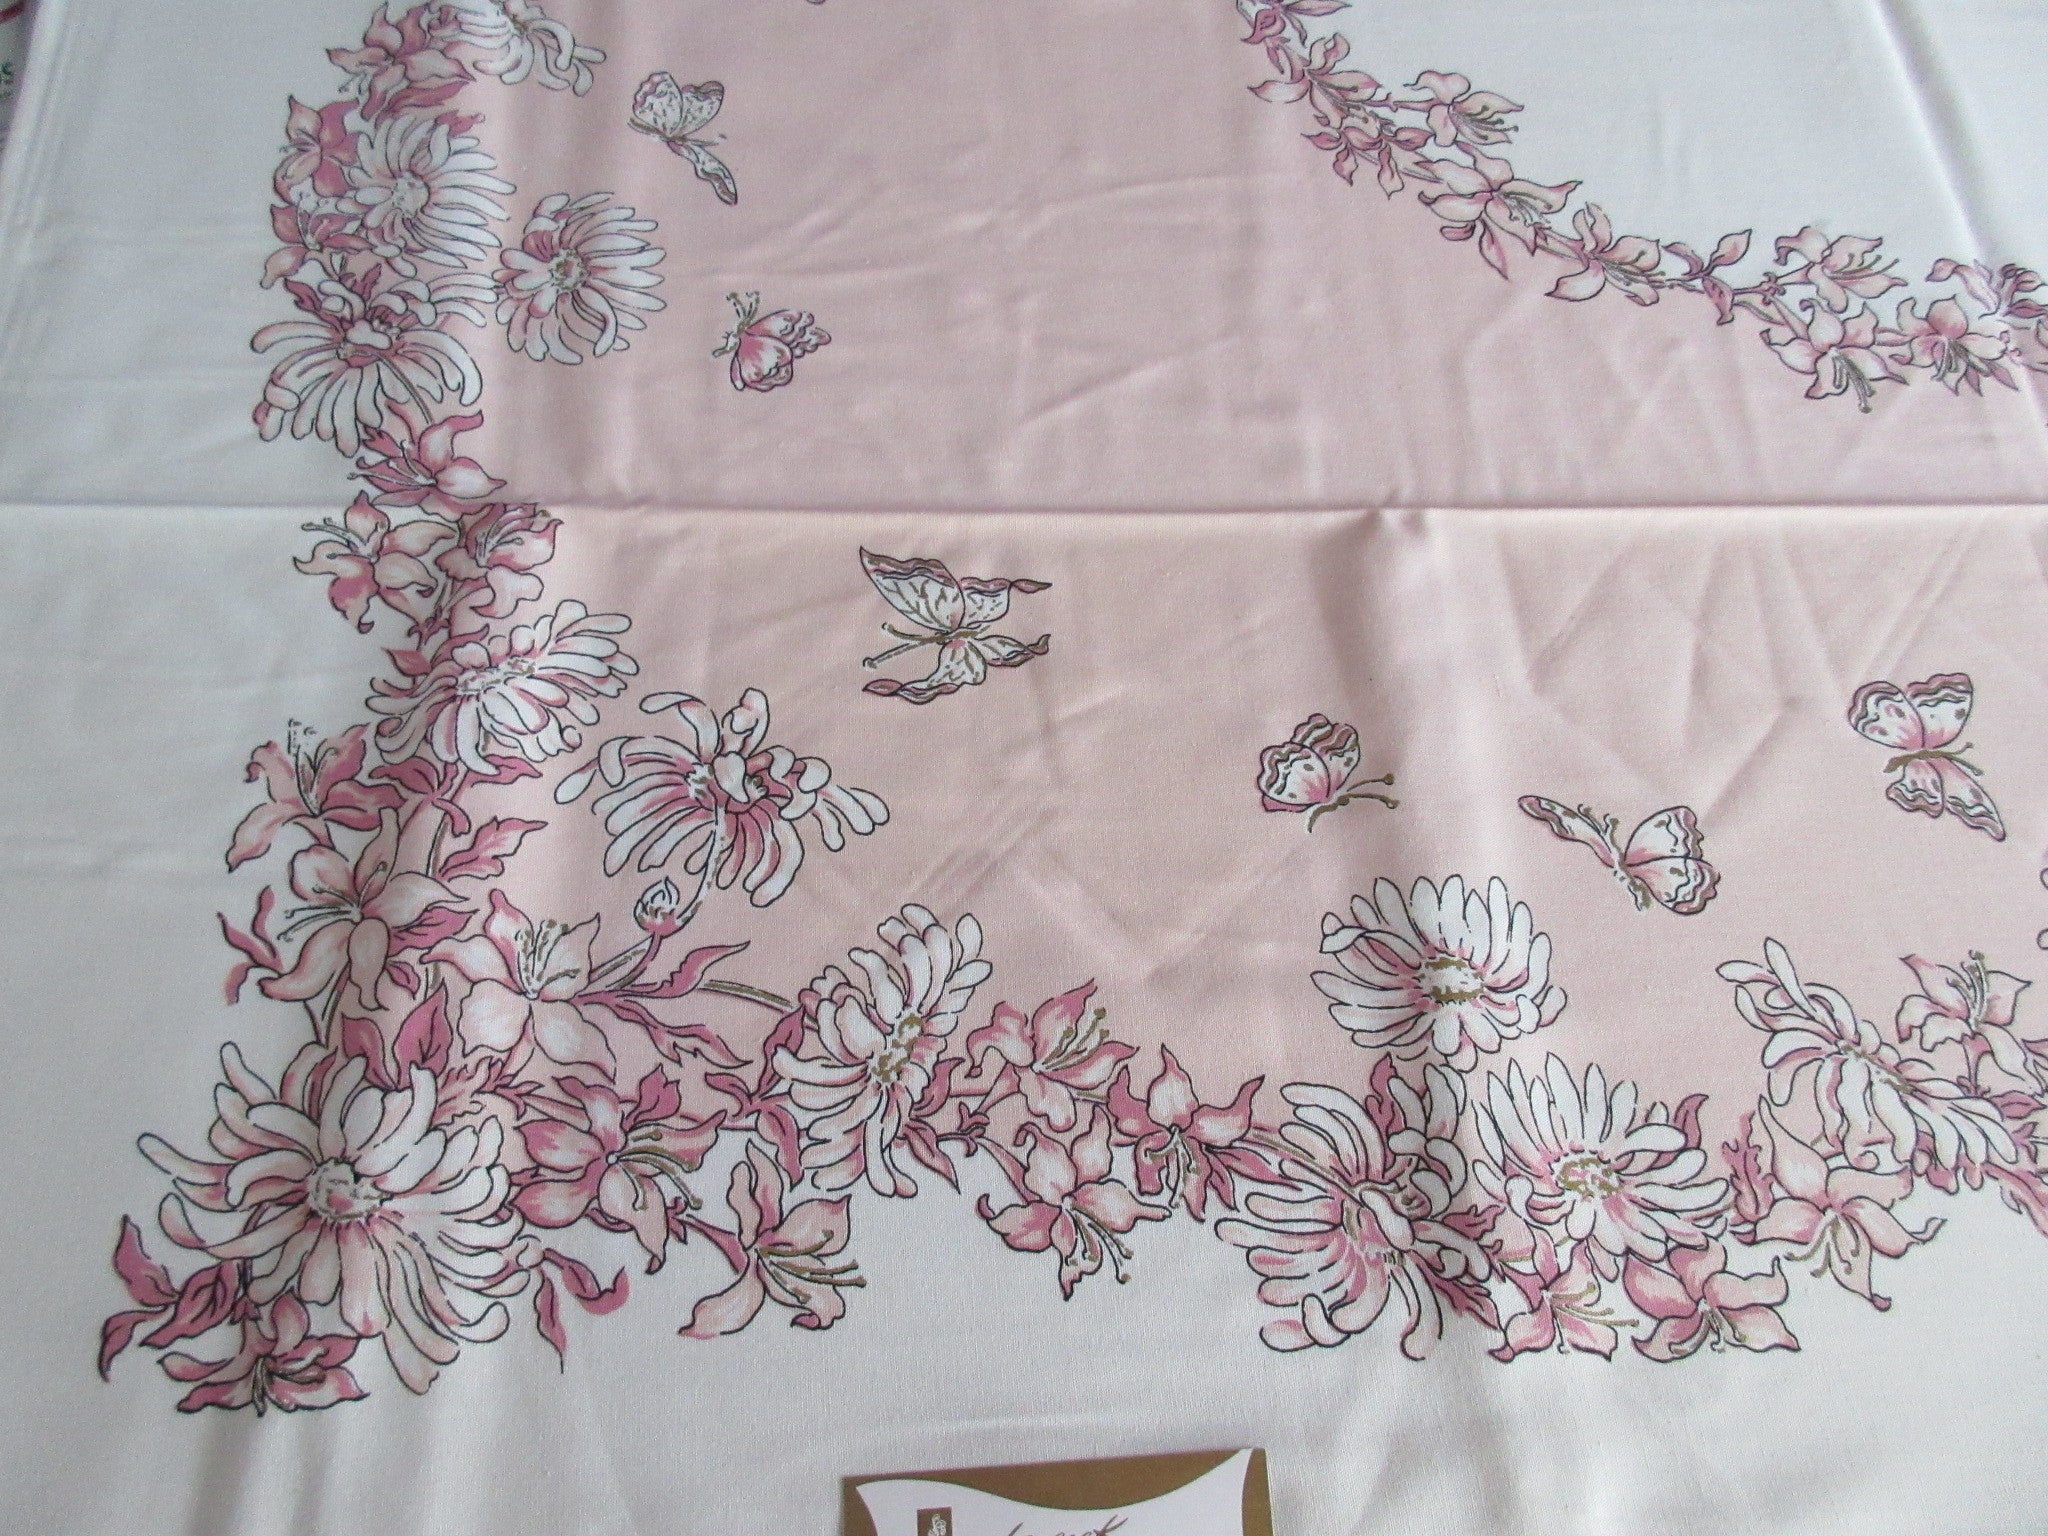 Pink Peach Gold Daisies MWT Napkins Box Floral Vintage Printed Tablecloth (70 X 51)